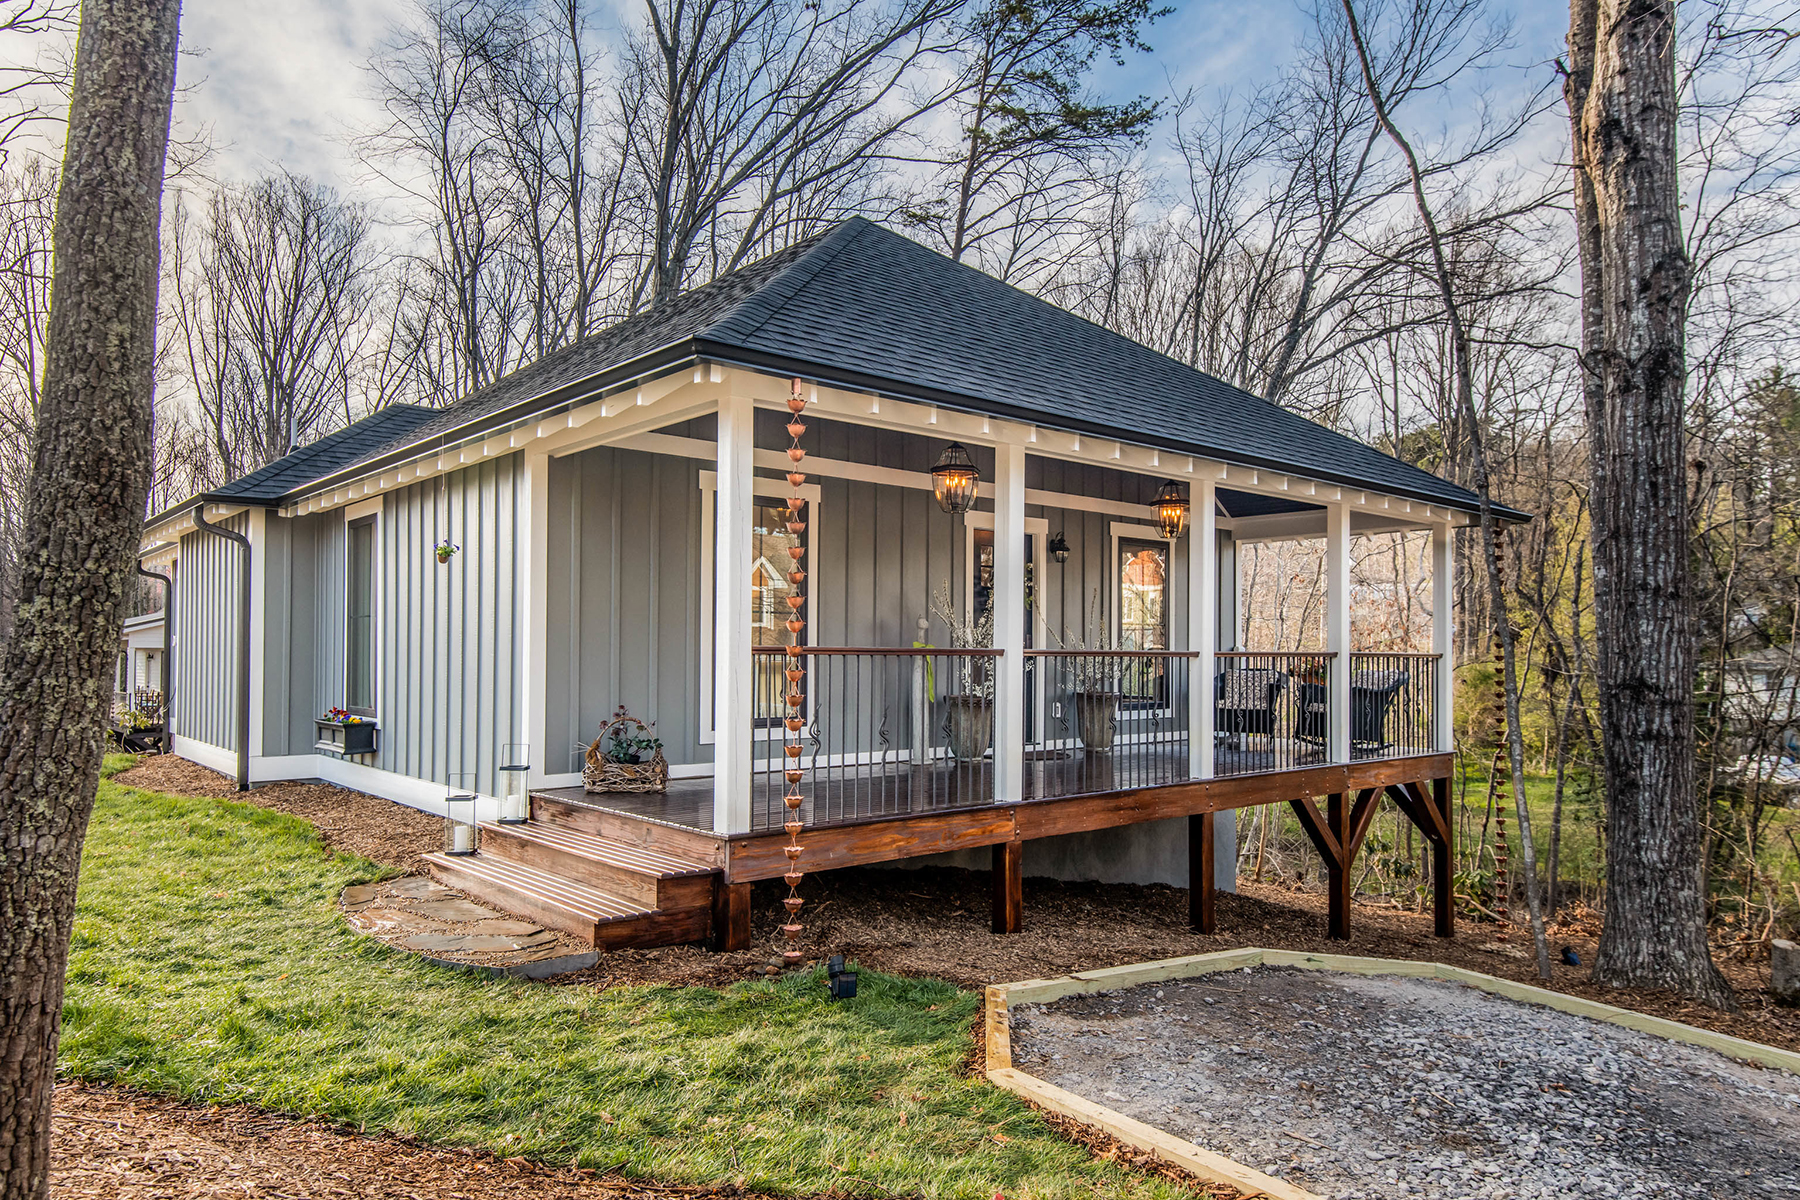 Single Family Home for Active at NEWLY CONSTRUCTED COTTAGE 102 Craggy St Black Mountain, North Carolina 28711 United States